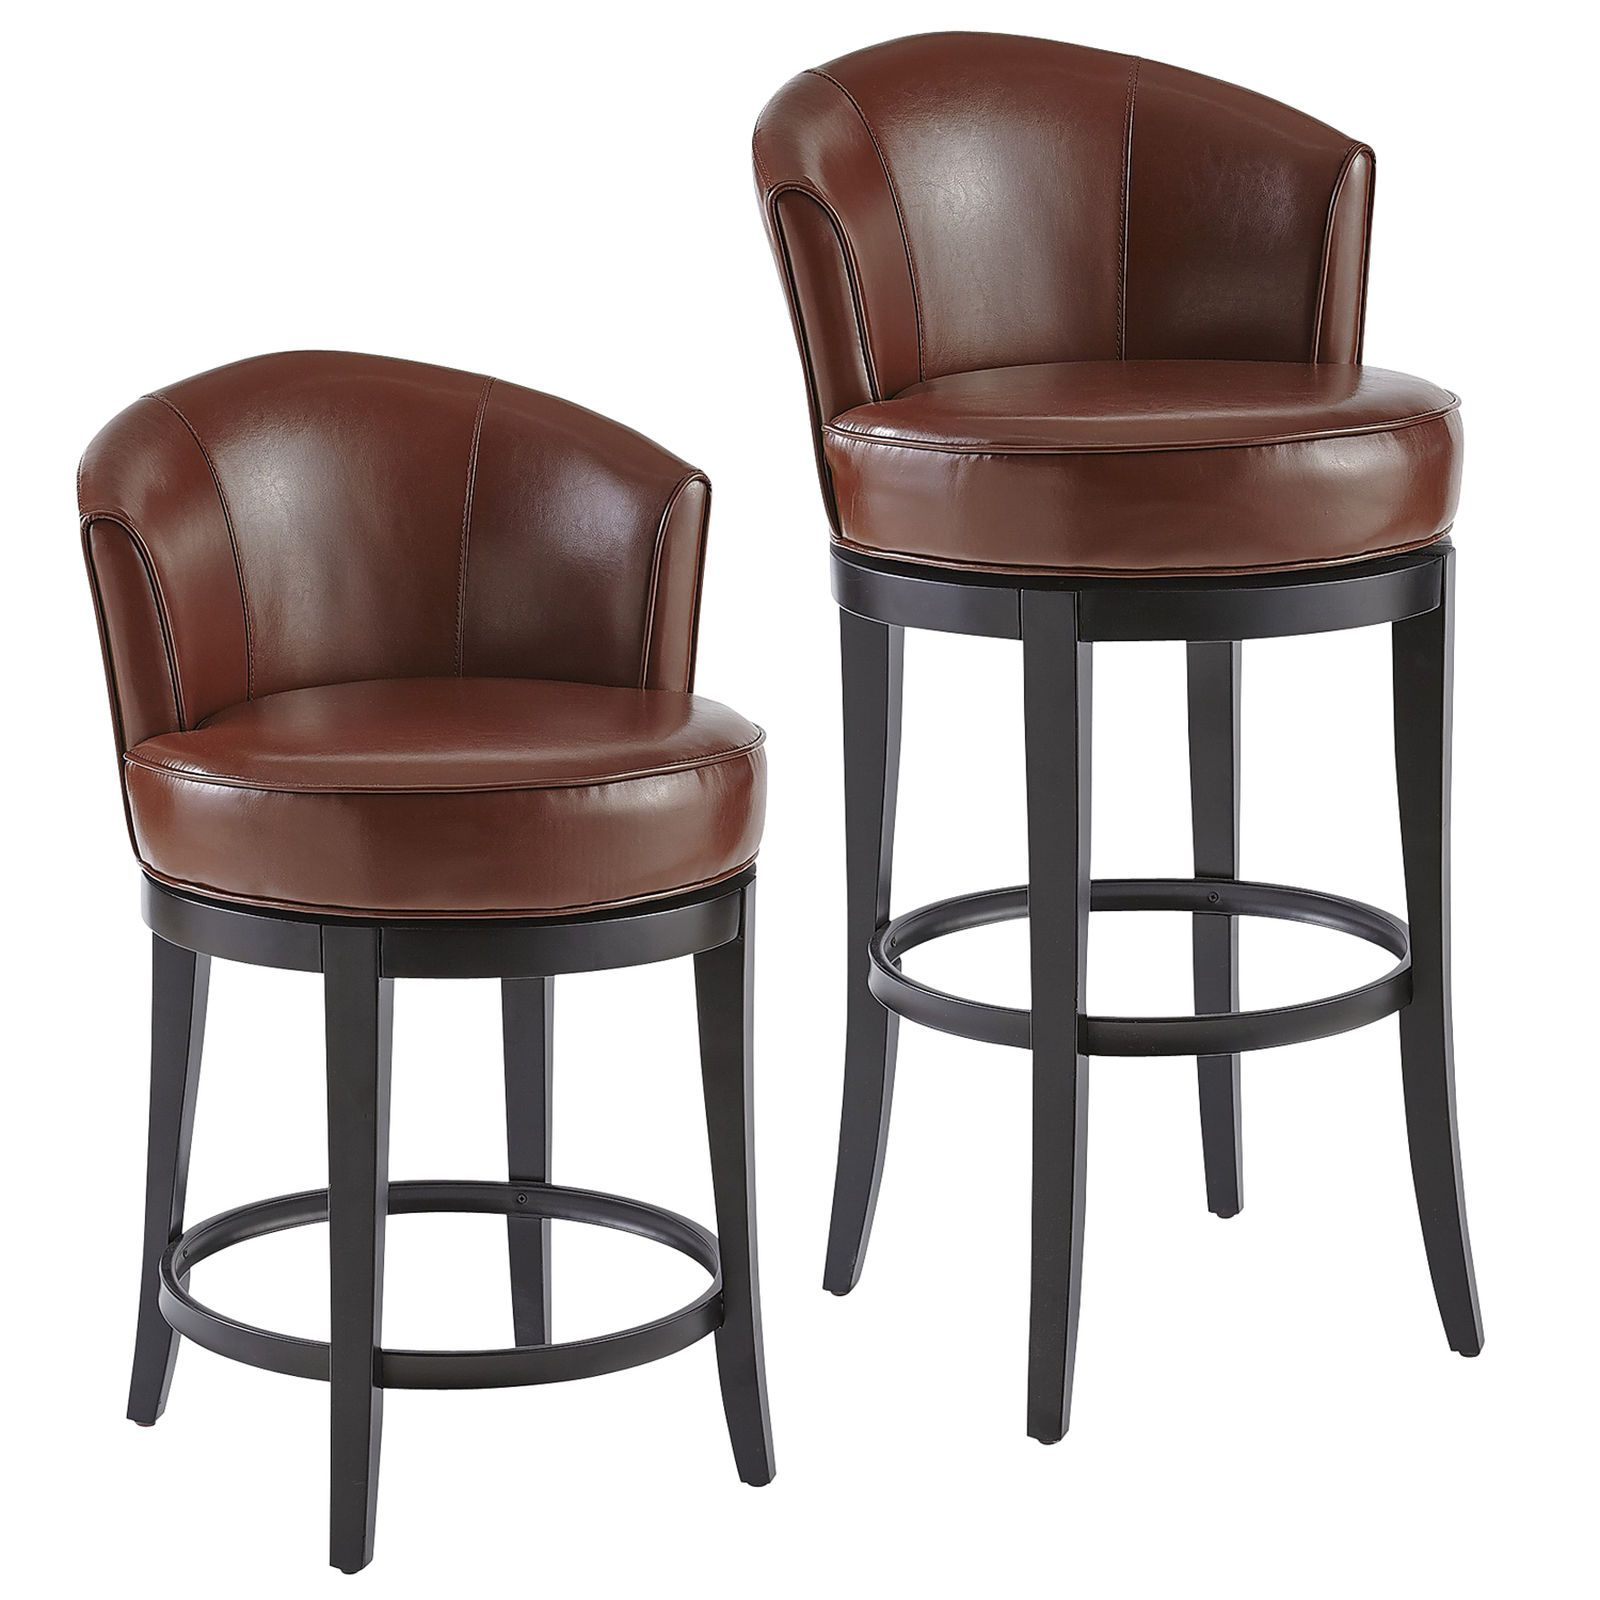 Let's face it. Bar stools that can spin around in circles